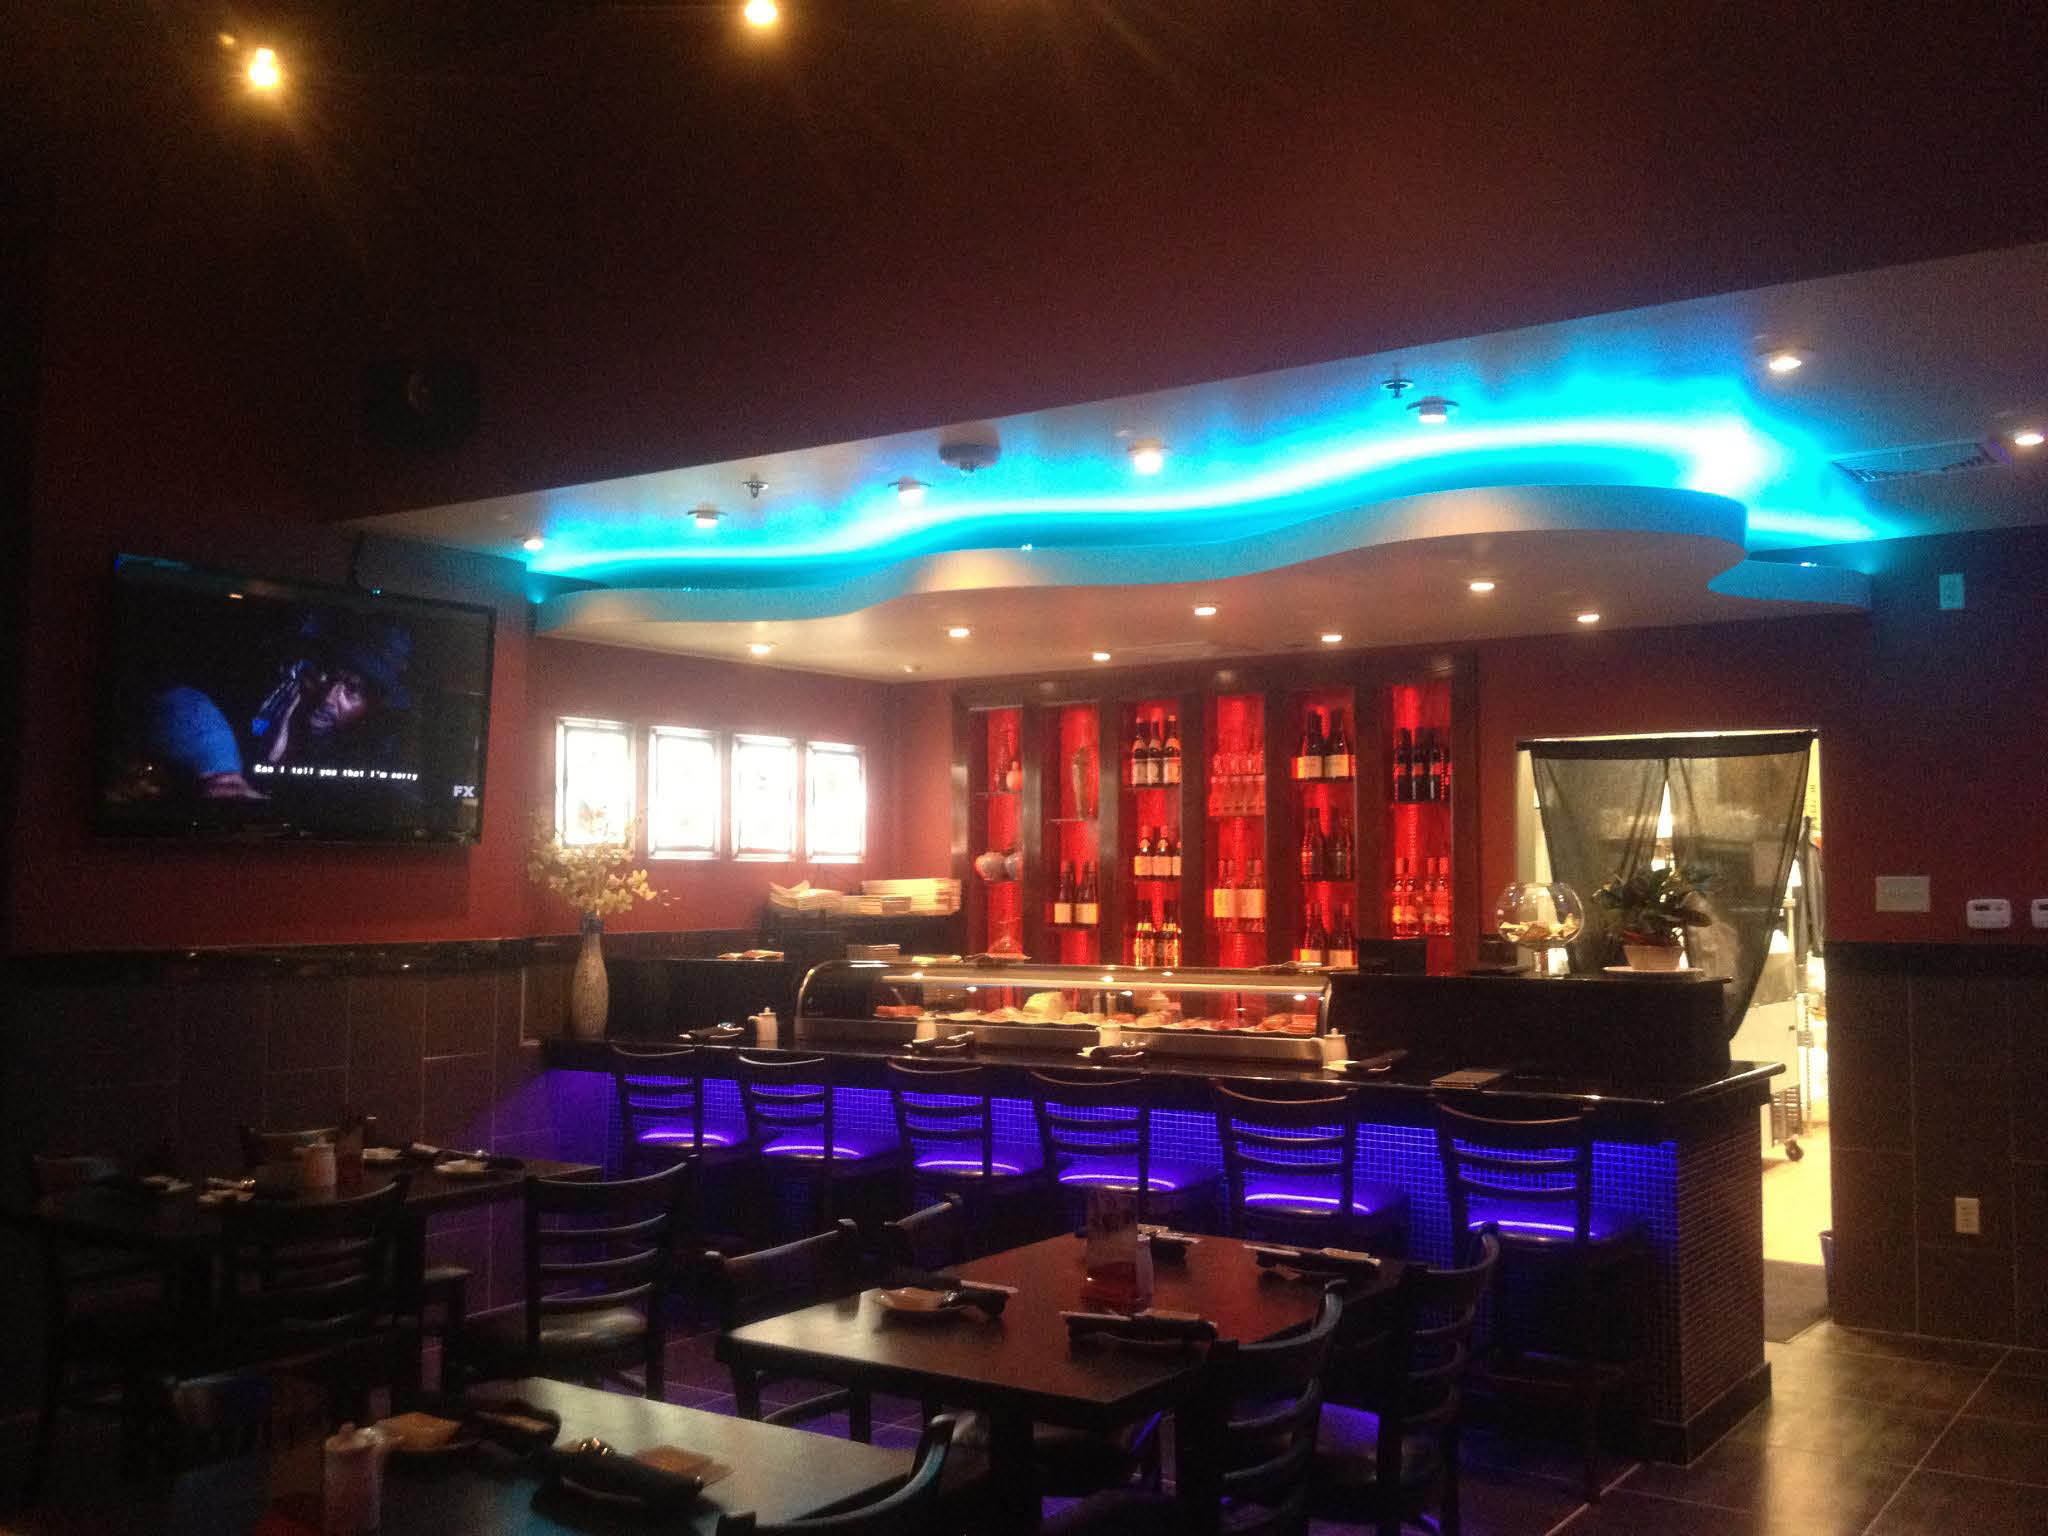 Hutong neon-lit modern interior - great for date night